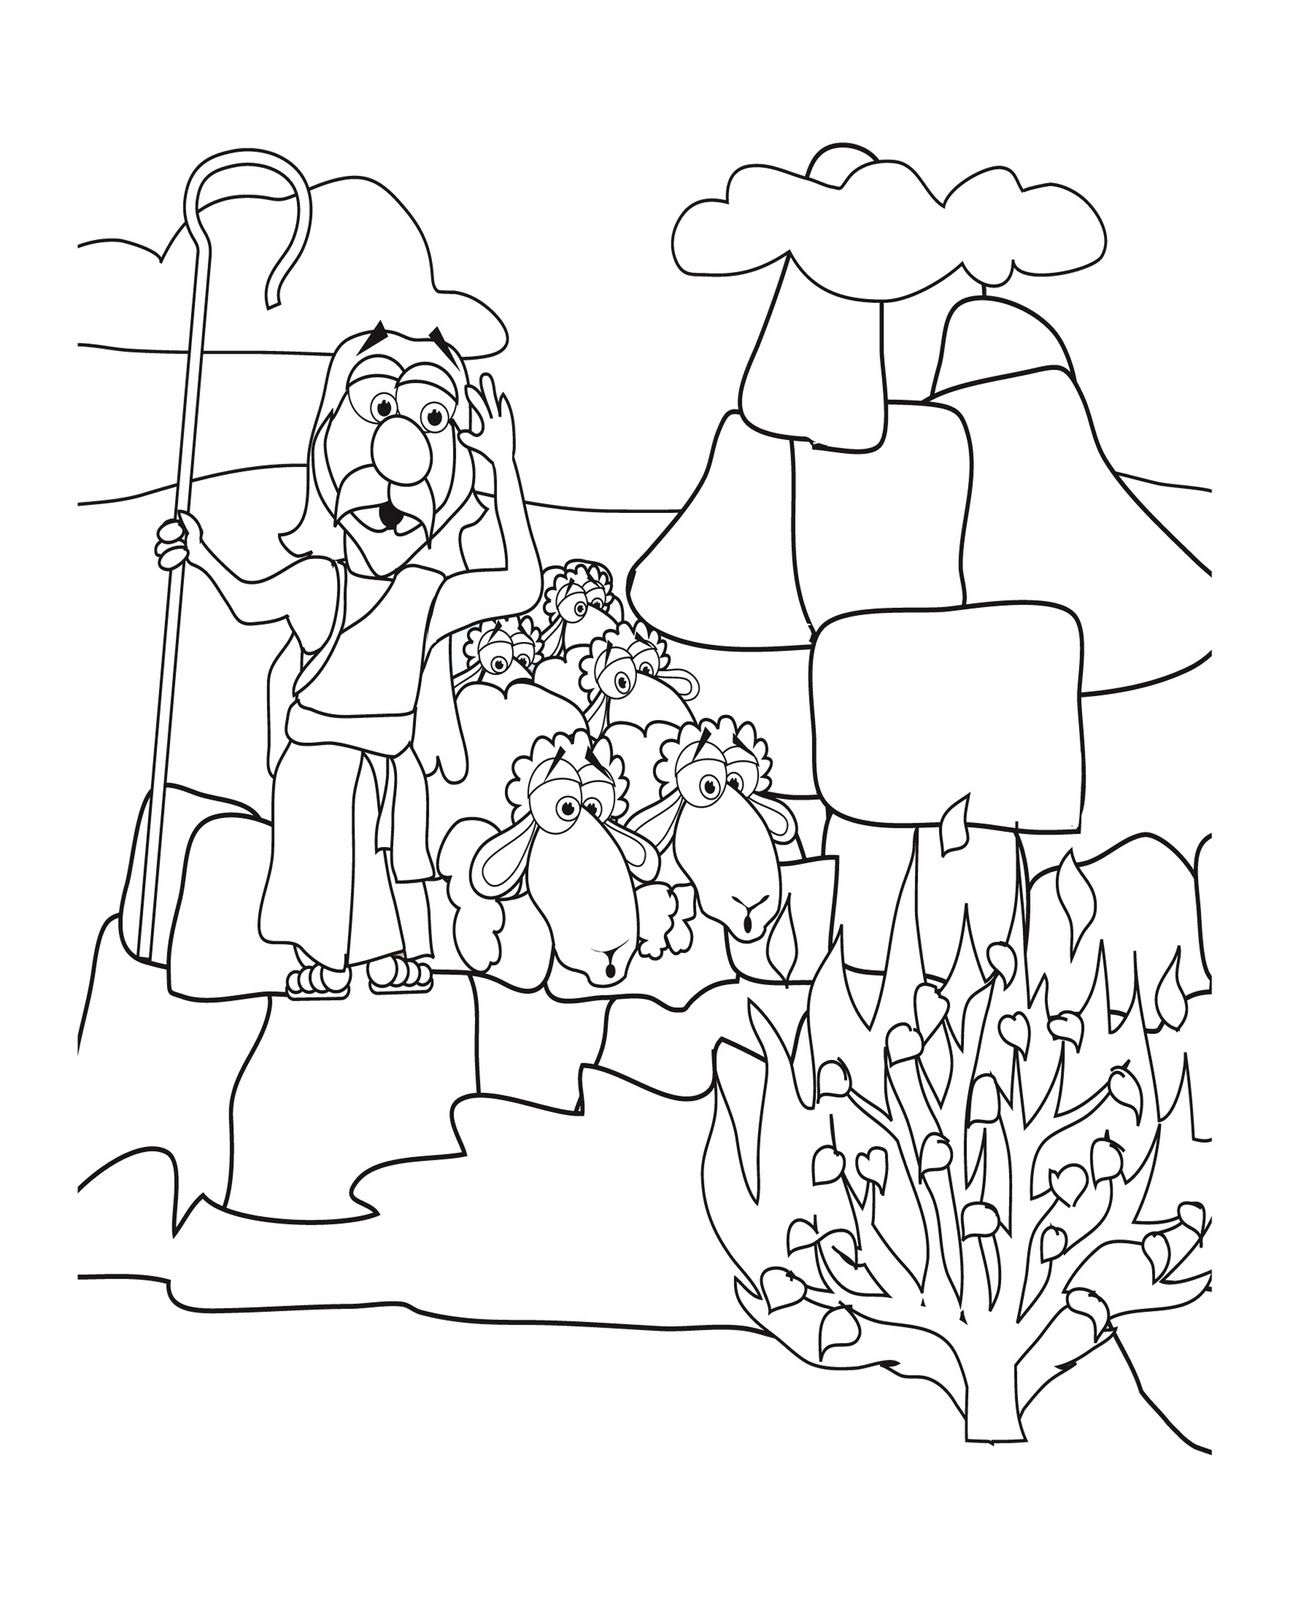 Coloring Pages Moses And The Burning Bush Coloring Pages moses and burning bush coloring page az pages the exodus pages